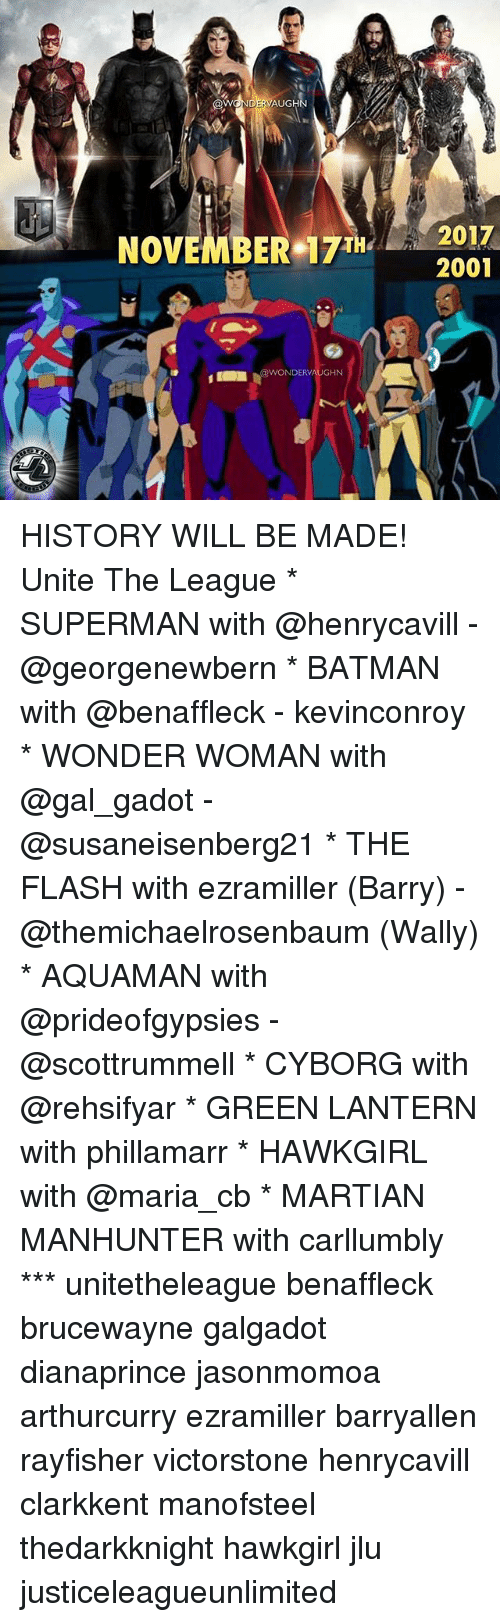 Batman, Memes, and Superman: AUGH  NOVEMBER 7T2017  2001  NDERV HISTORY WILL BE MADE! Unite The League * SUPERMAN with @henrycavill - @georgenewbern * BATMAN with @benaffleck - kevinconroy * WONDER WOMAN with @gal_gadot - @susaneisenberg21 * THE FLASH with ezramiller (Barry) - @themichaelrosenbaum (Wally) * AQUAMAN with @prideofgypsies - @scottrummell * CYBORG with @rehsifyar * GREEN LANTERN with phillamarr * HAWKGIRL with @maria_cb * MARTIAN MANHUNTER with carllumbly *** unitetheleague benaffleck brucewayne galgadot dianaprince jasonmomoa arthurcurry ezramiller barryallen rayfisher victorstone henrycavill clarkkent manofsteel thedarkknight hawkgirl jlu justiceleagueunlimited